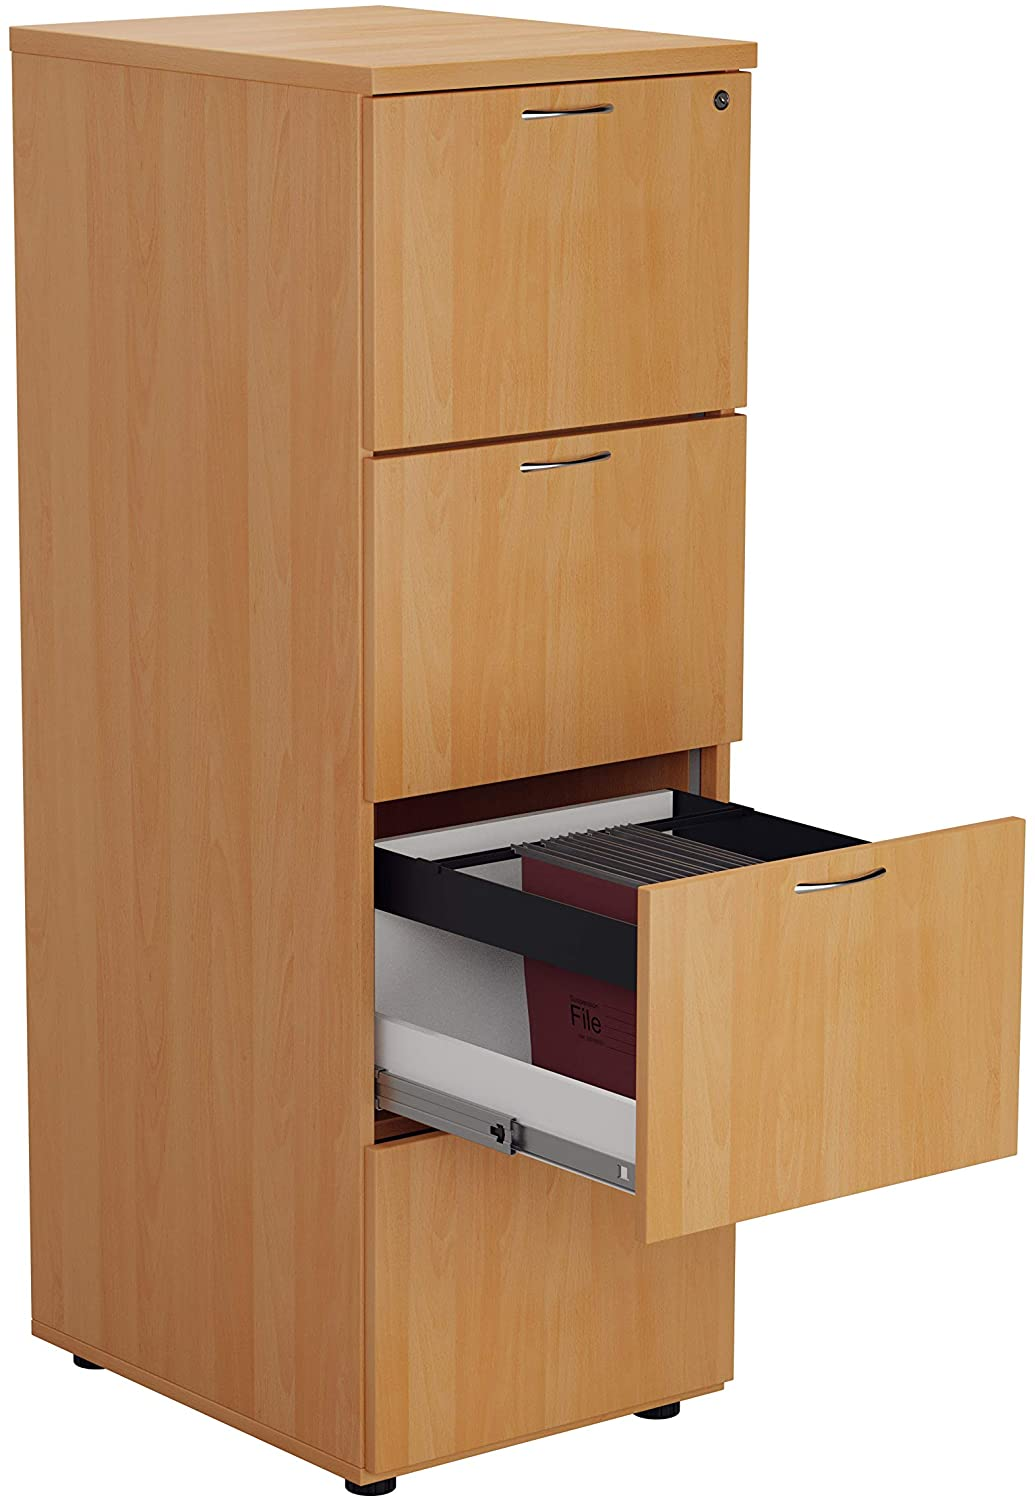 Picture of: Relax Office Relax Office Smart Wooden Filing Cabinet With 4 Drawers540mm Wooden Filing Cabinet With 4 Drawers Office Storage File Organizers Lockable